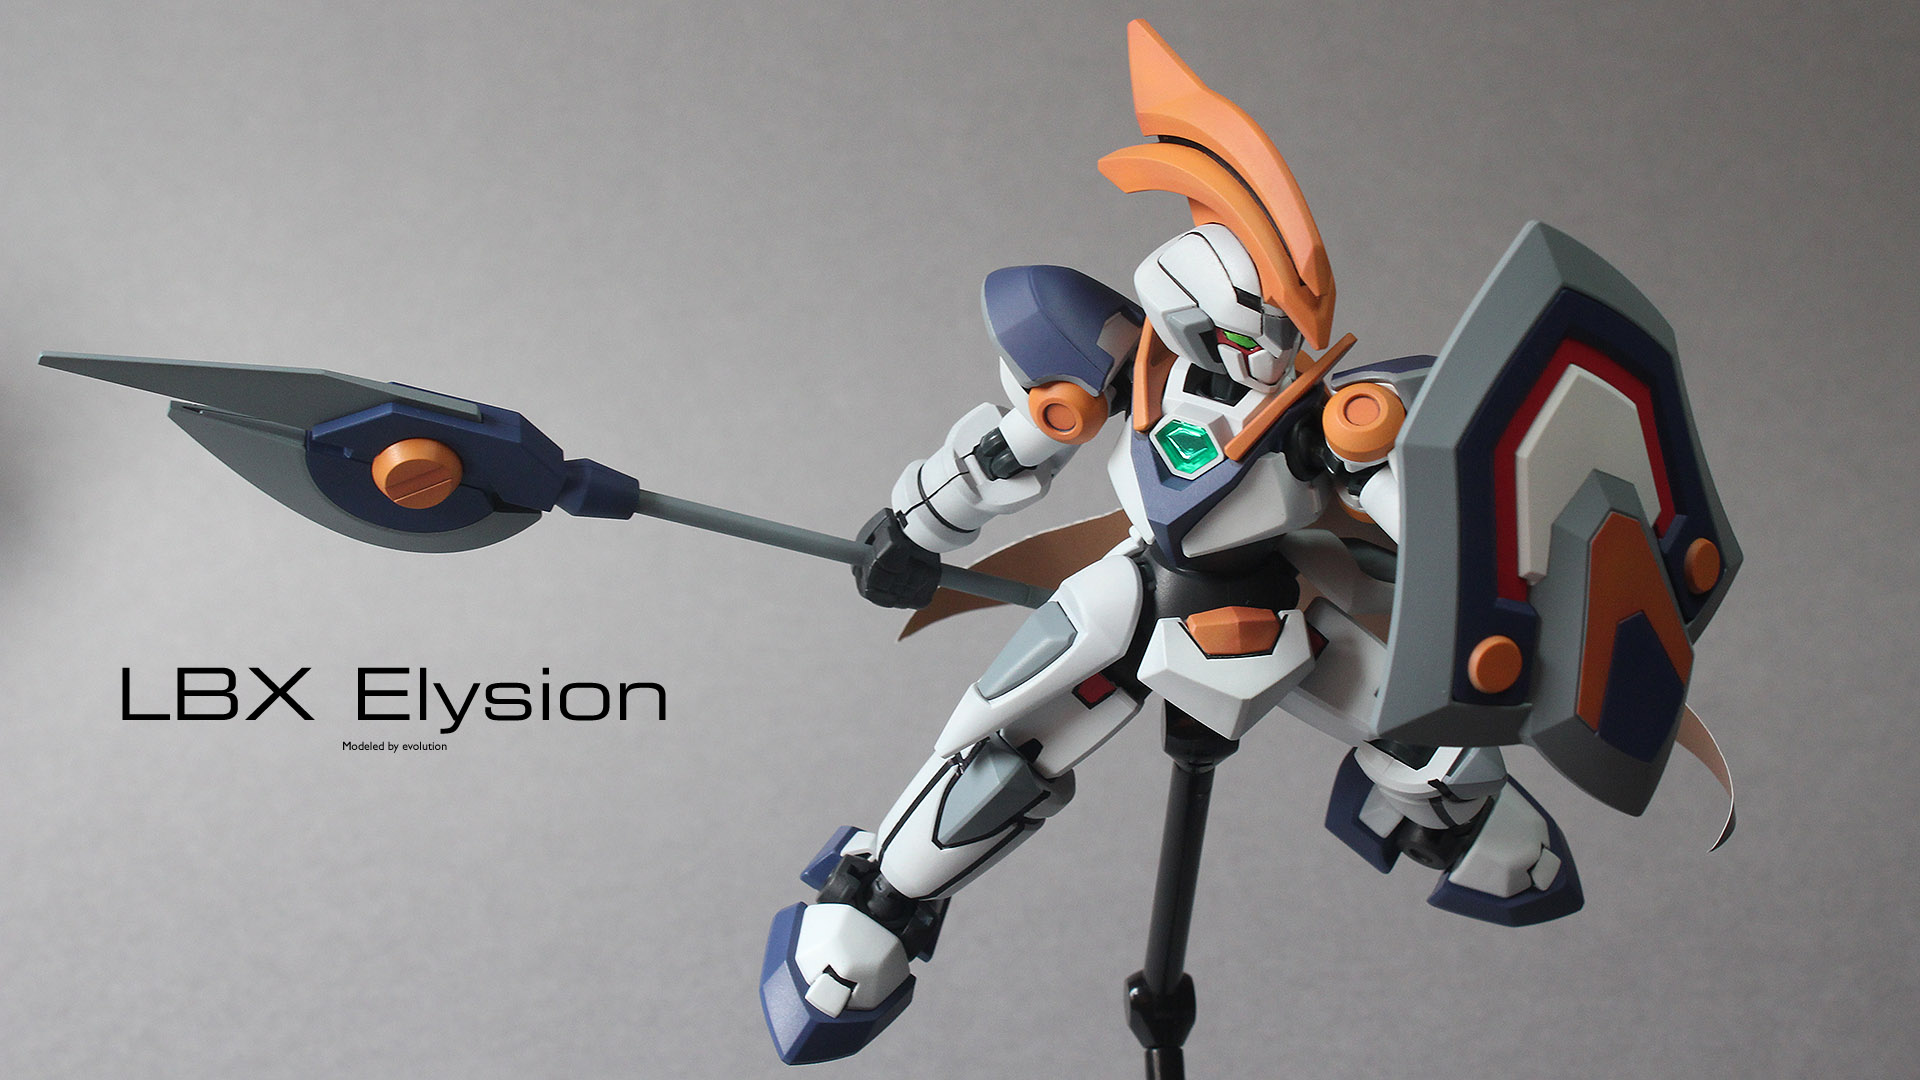 LBX Elysion Complete play evolution 1920x1080